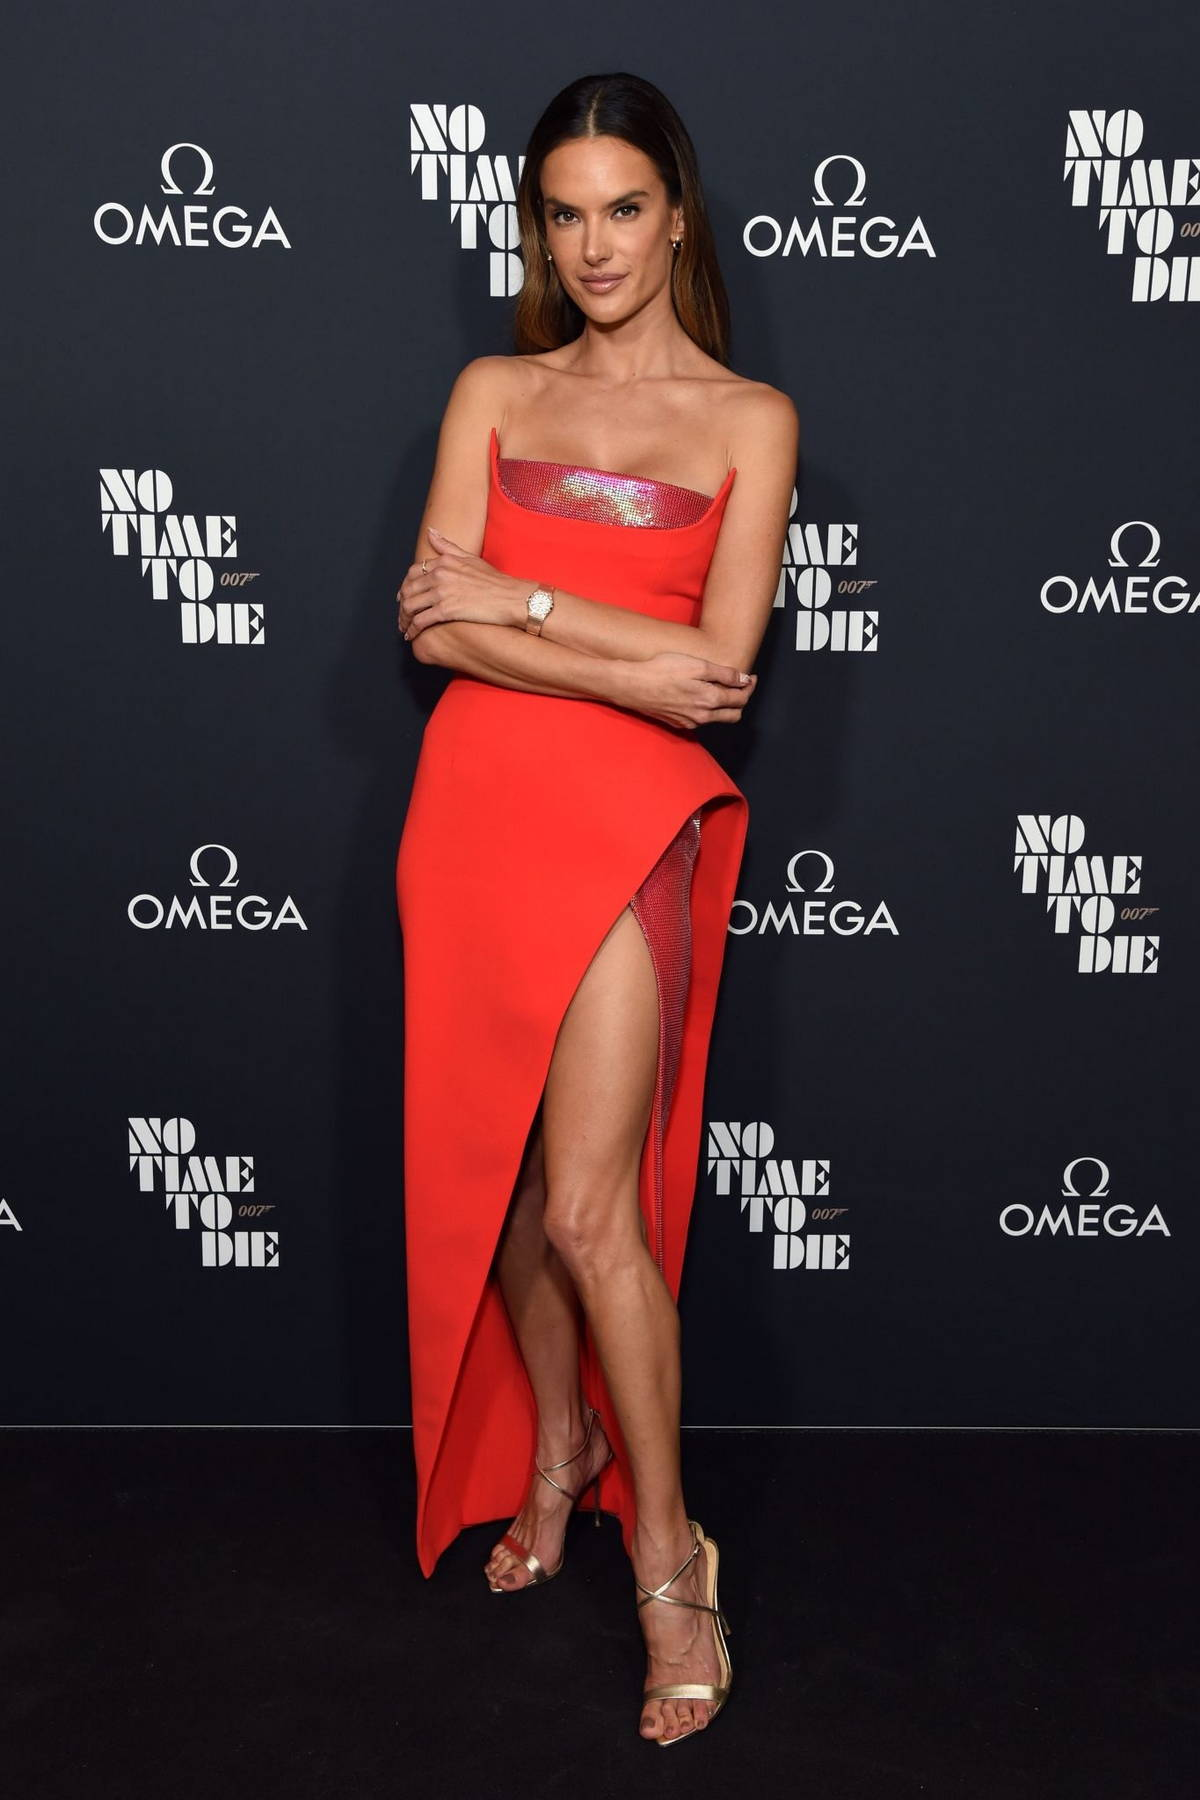 Alessandra Ambrosio attends the 007 'No Time To Die' release celebration with OMEGA in Los Angeles